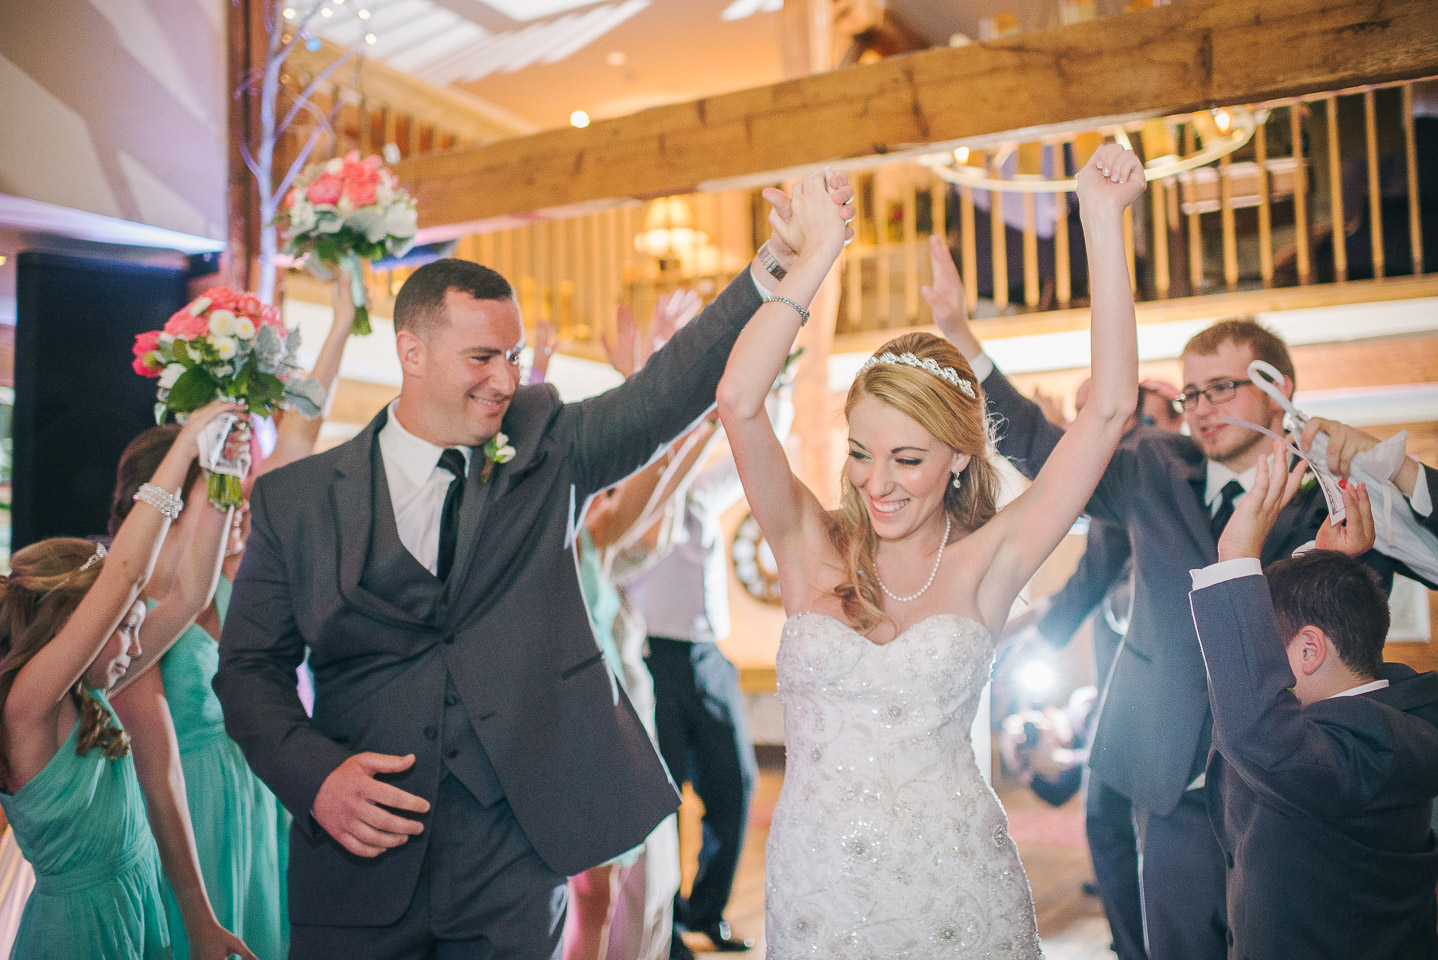 NH Wedding Photography: bride and groom introduction